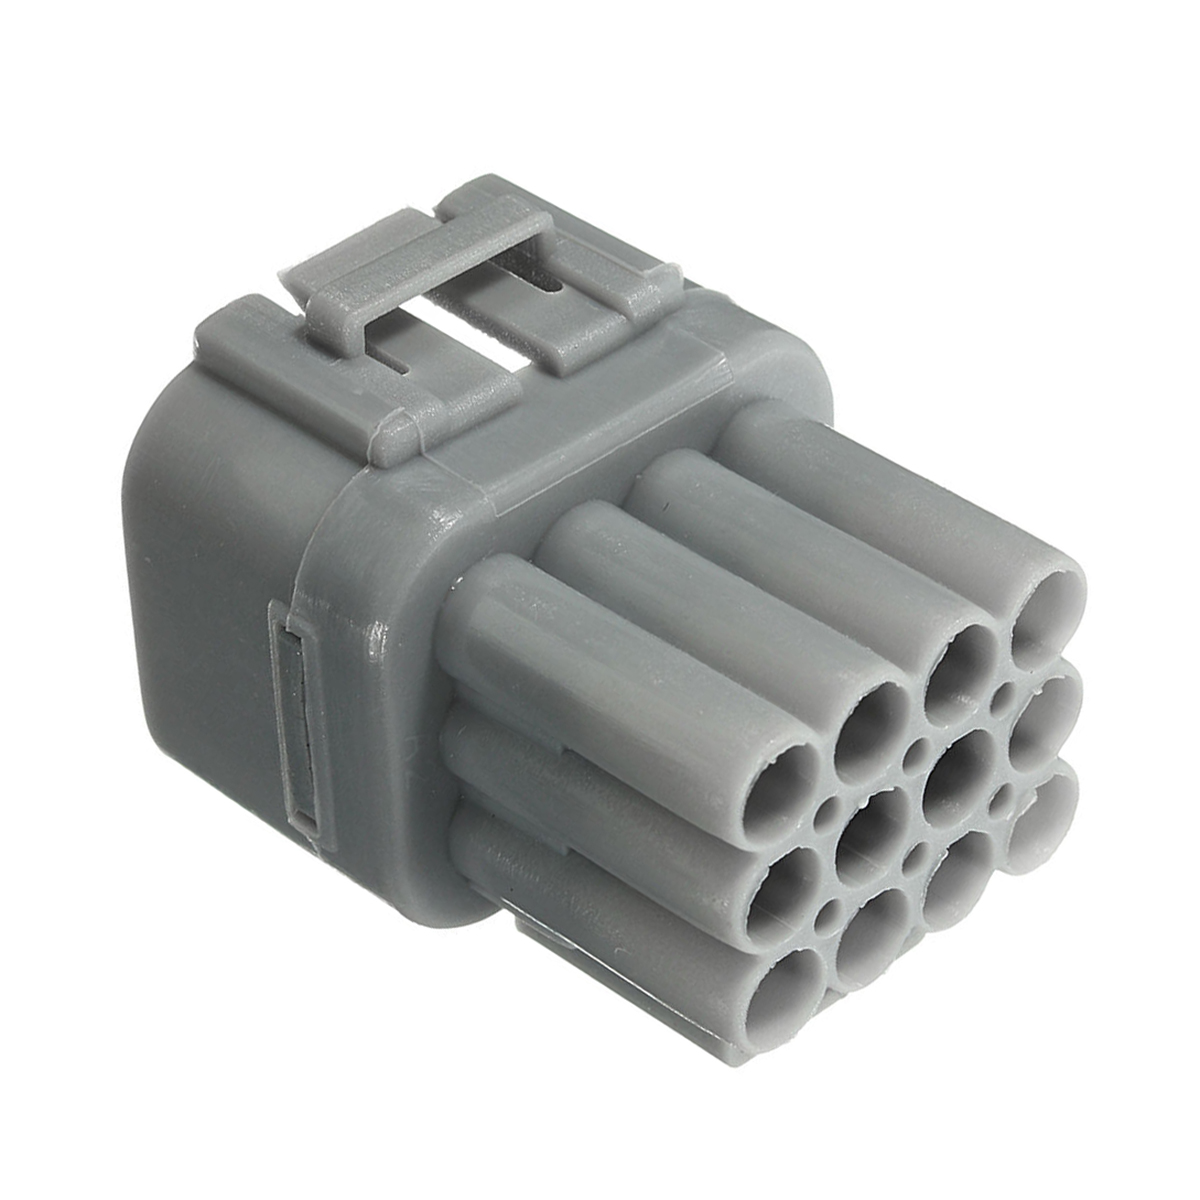 1 Set Waterproof Connectors 12 Pin Way Sealed Electrical Wire ...